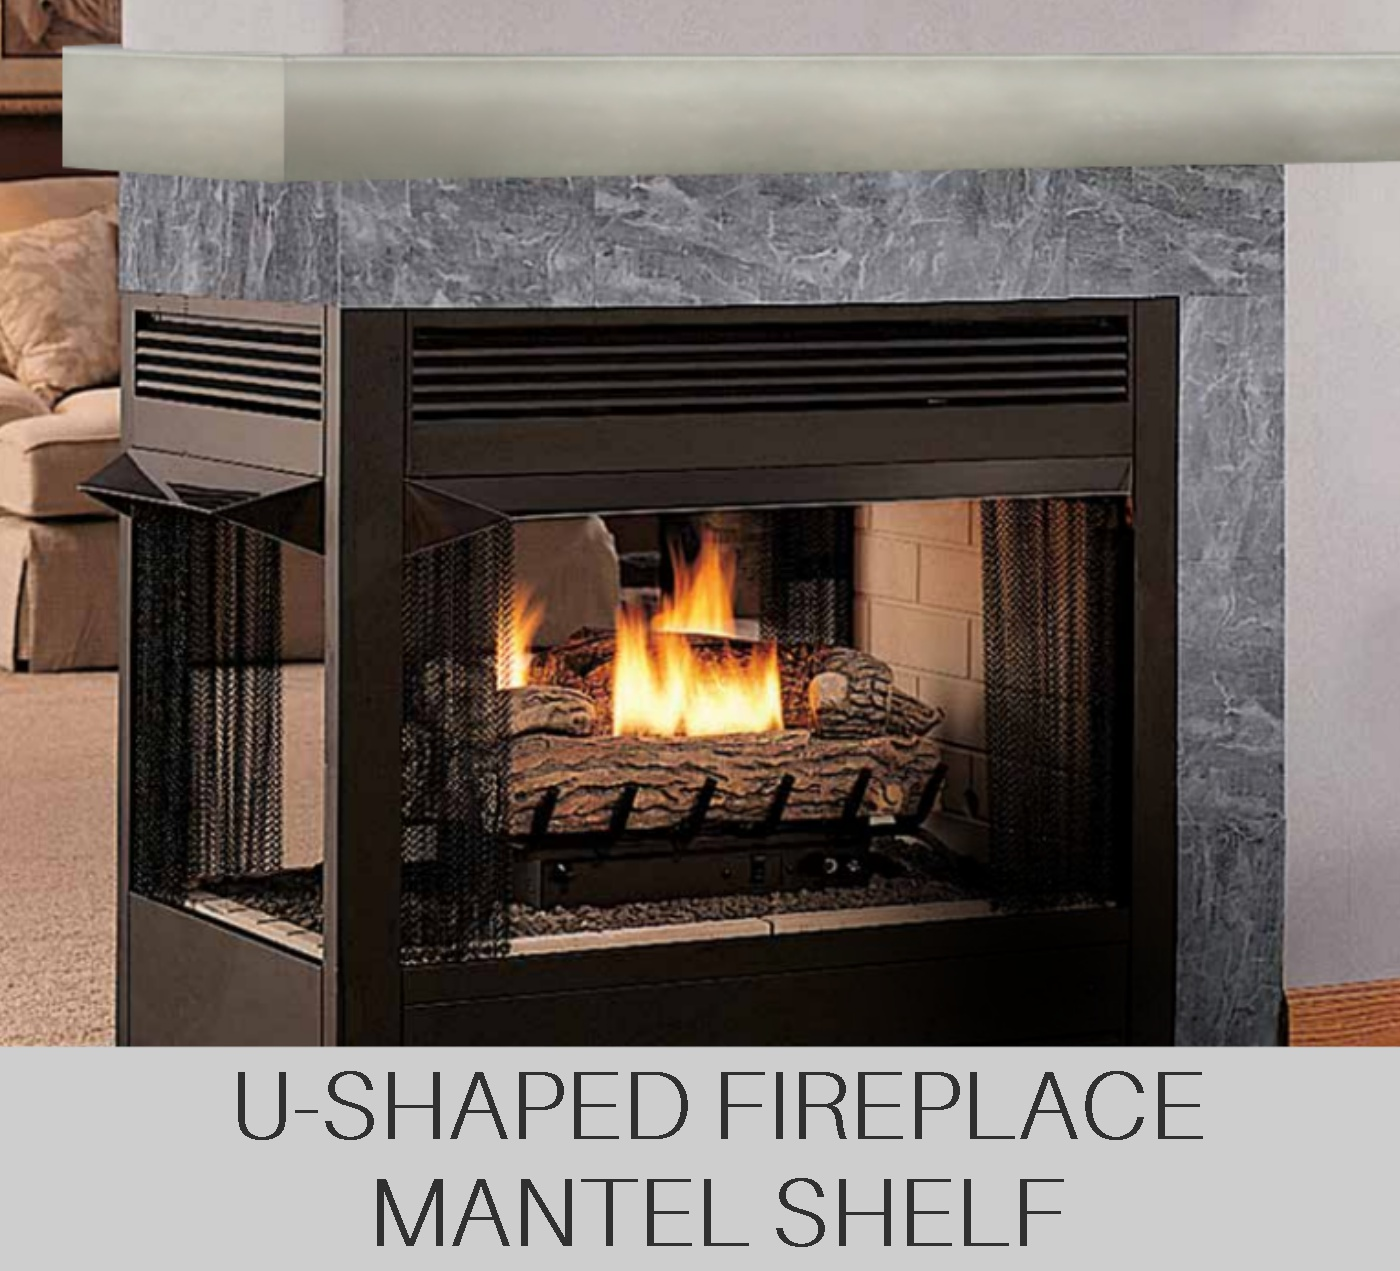 U-Shaped Fireplace Mantel Shelf